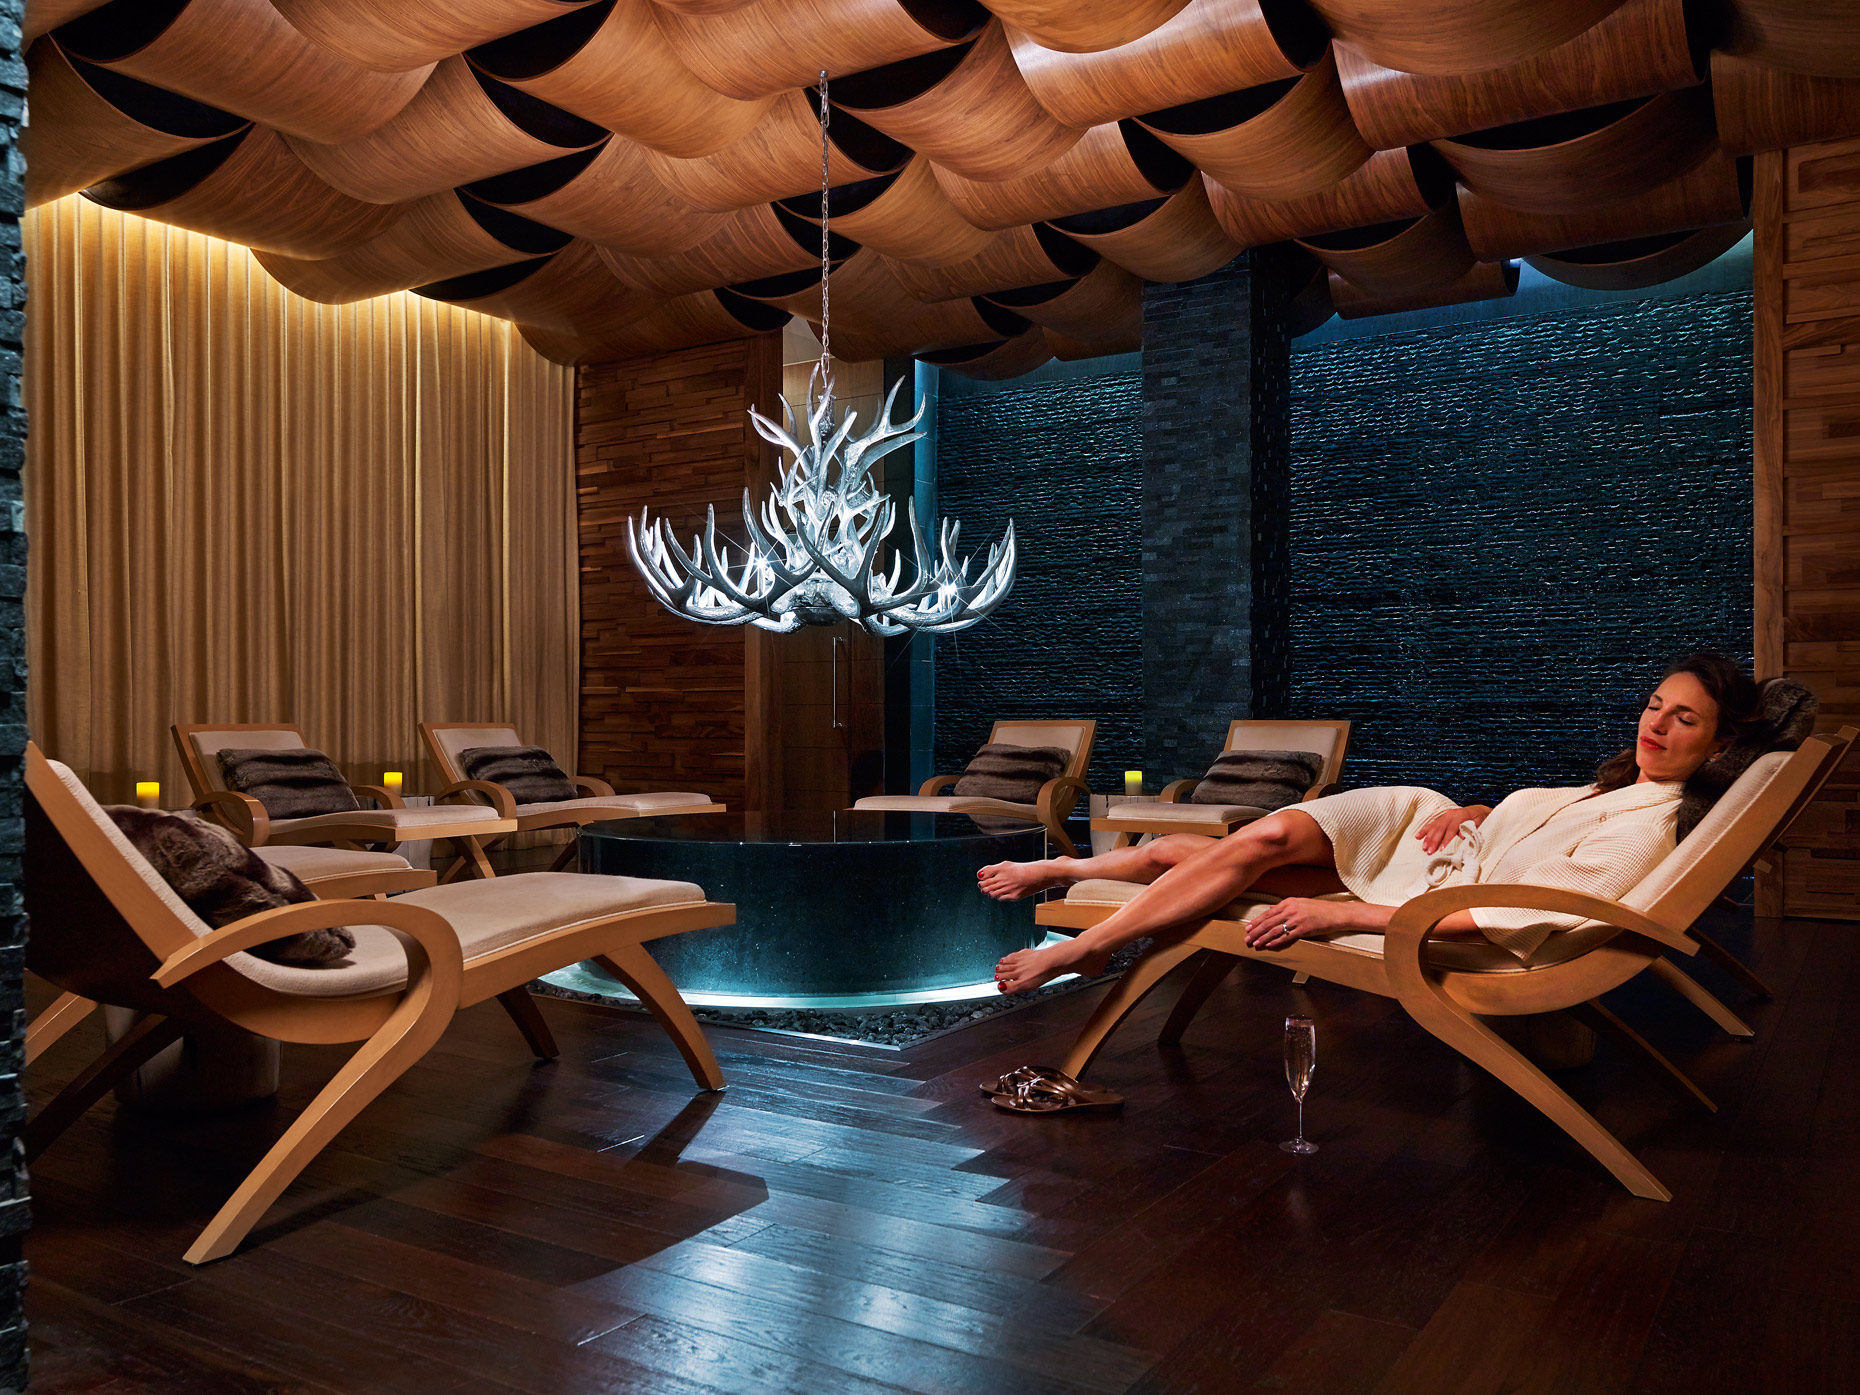 viceroy_spa_5346_ShawnOConnor